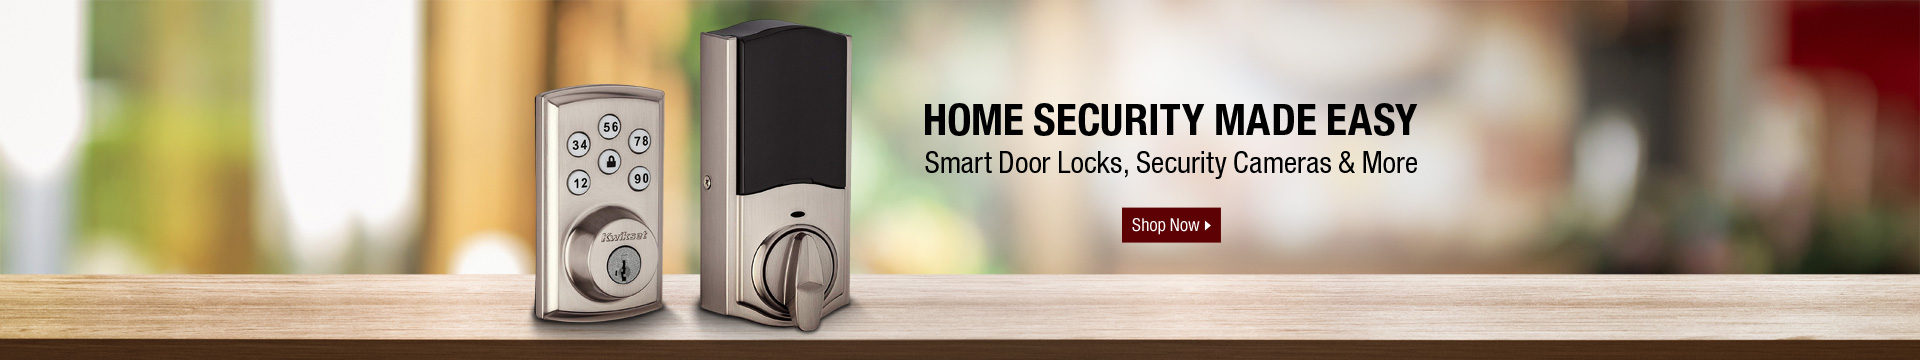 Home security made easy